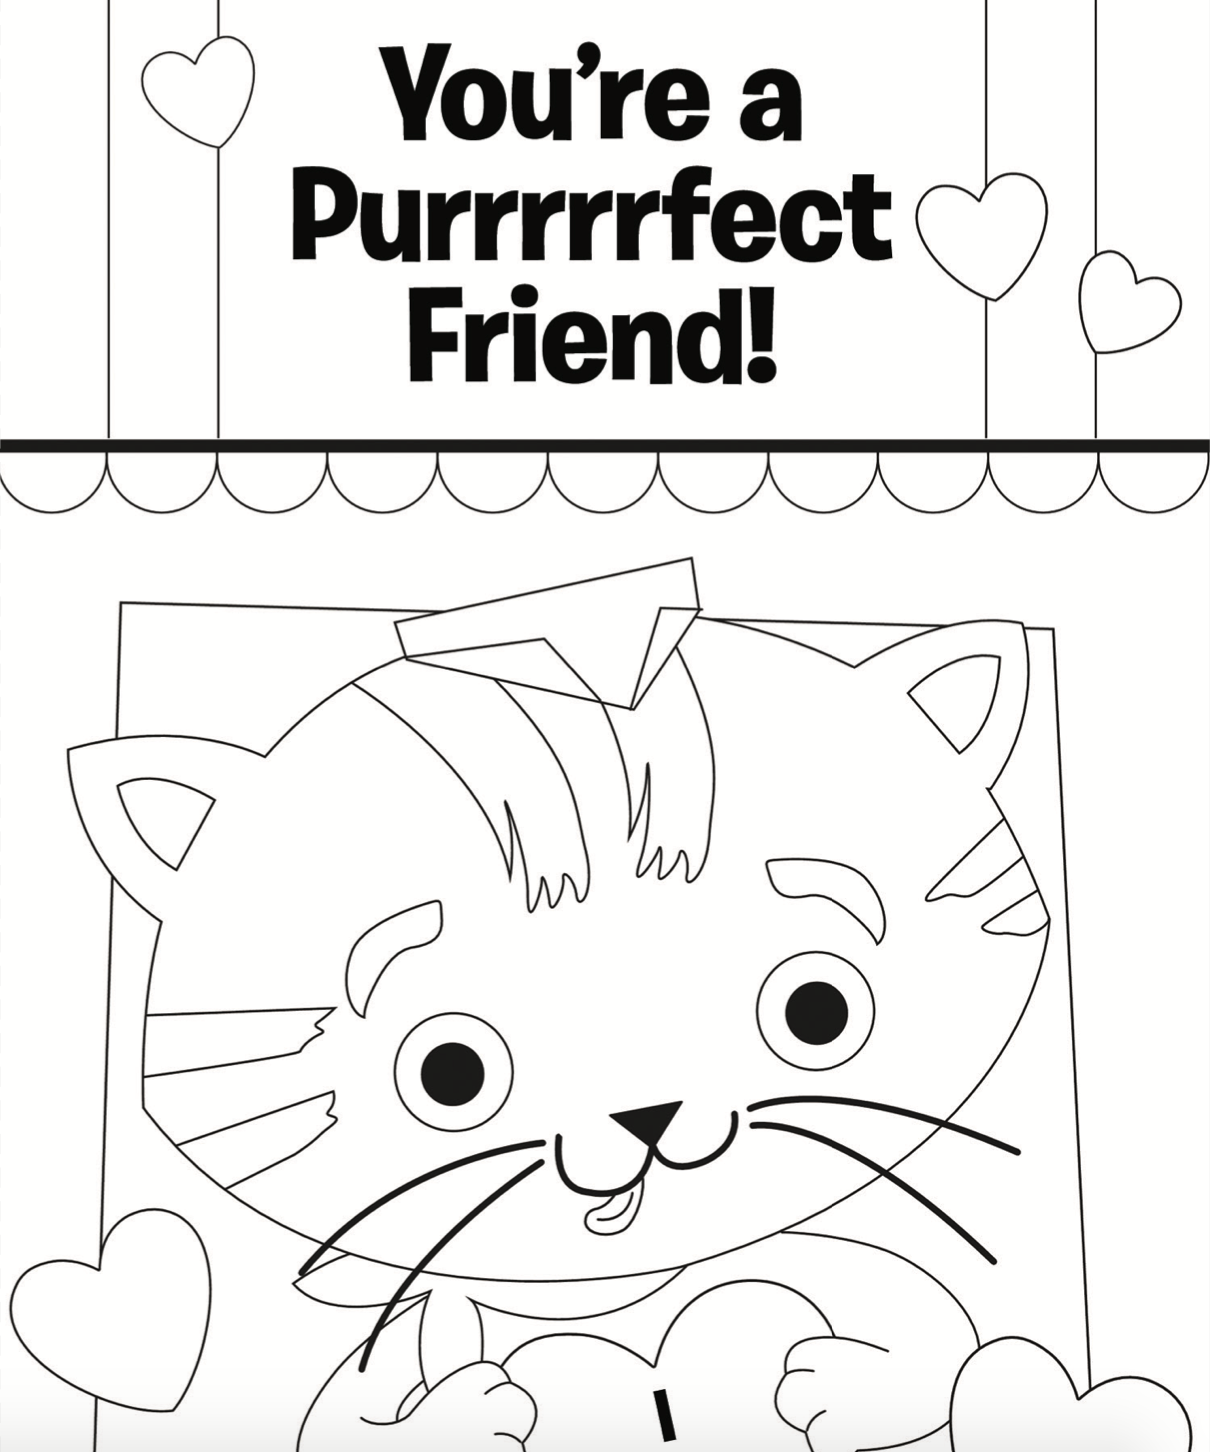 Pin On Nifty Coloring Pages Amp Worksheets For Kids